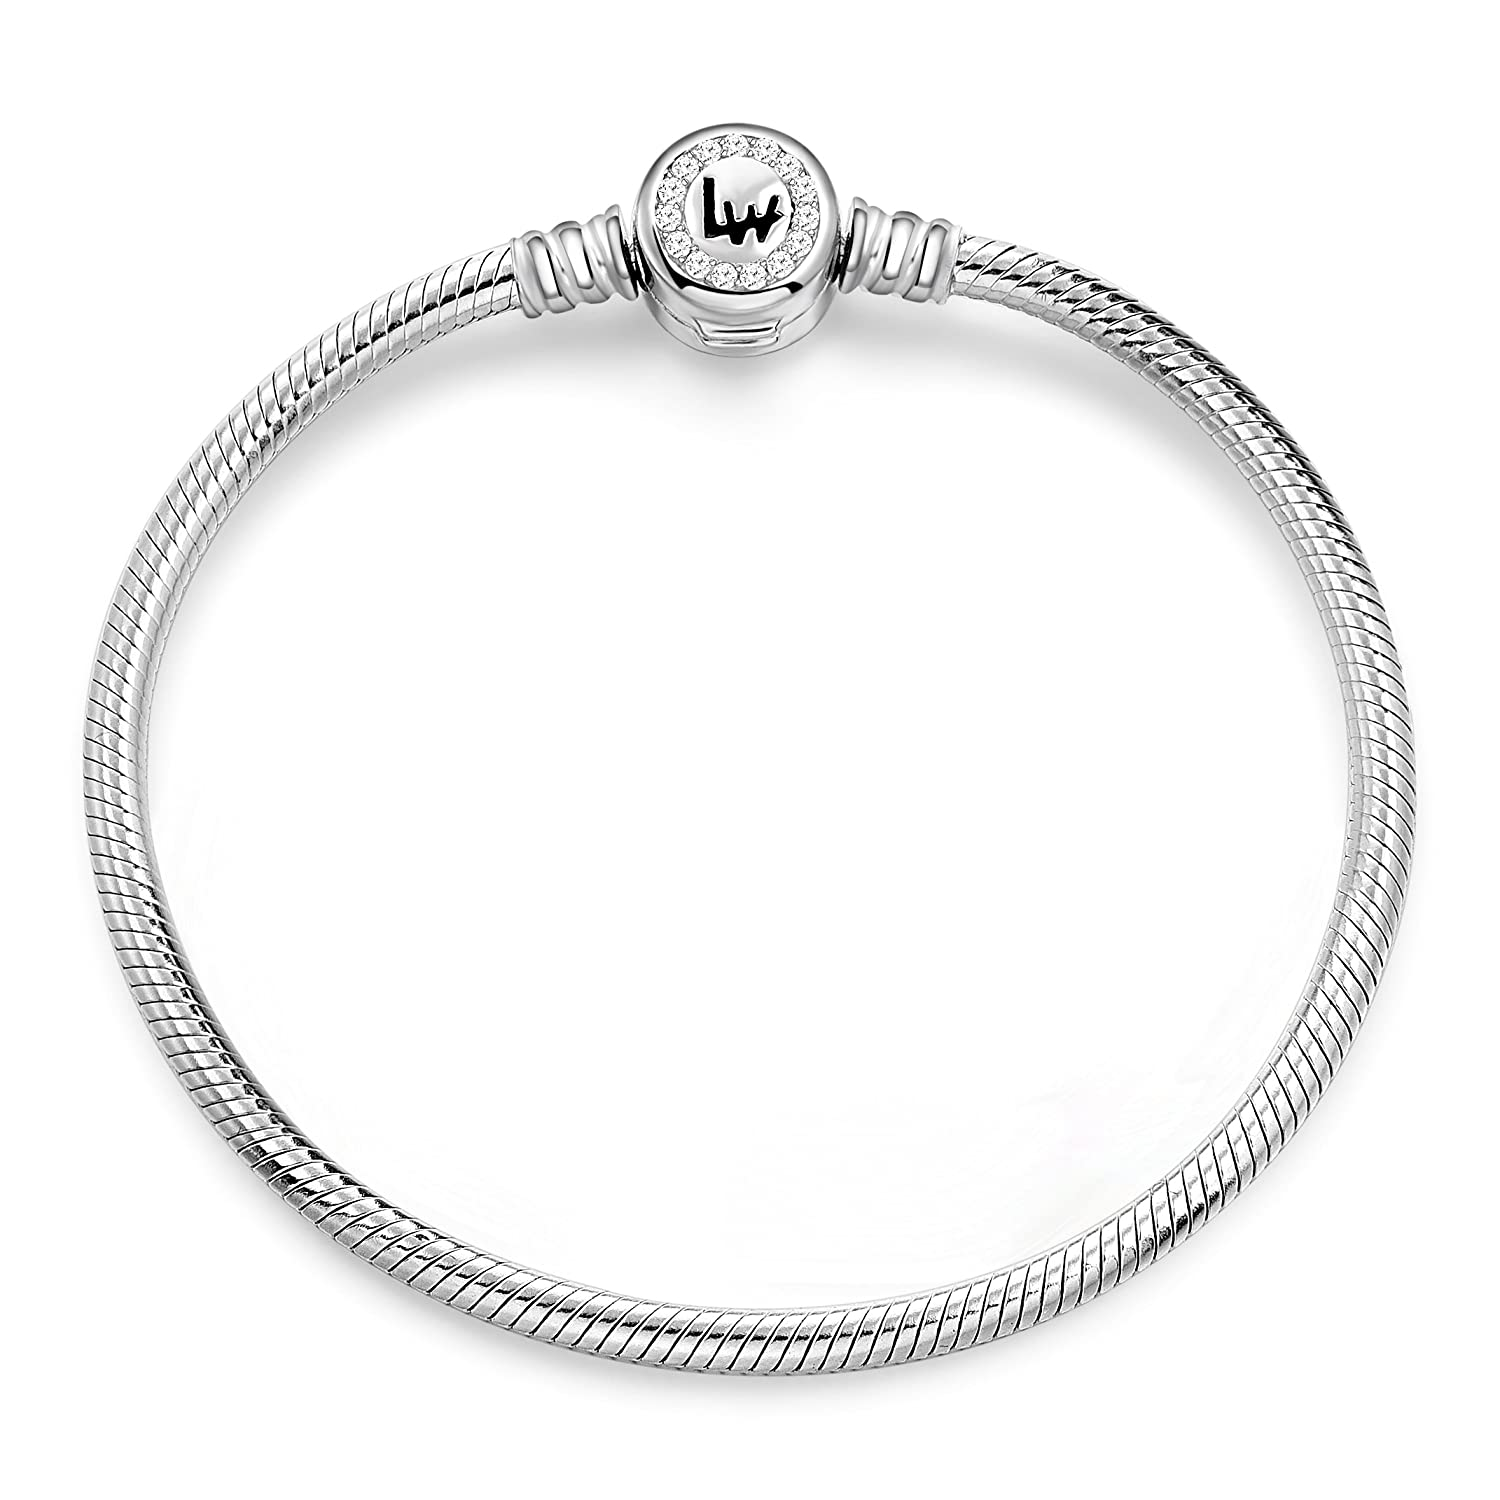 Beads Reasonable Genuine 925 Sterling Silver Fashion Simple Love Letters I Love My Home Hanging Beads Fit For Womens Charm Bracelet Diy Jewelry High Standard In Quality And Hygiene